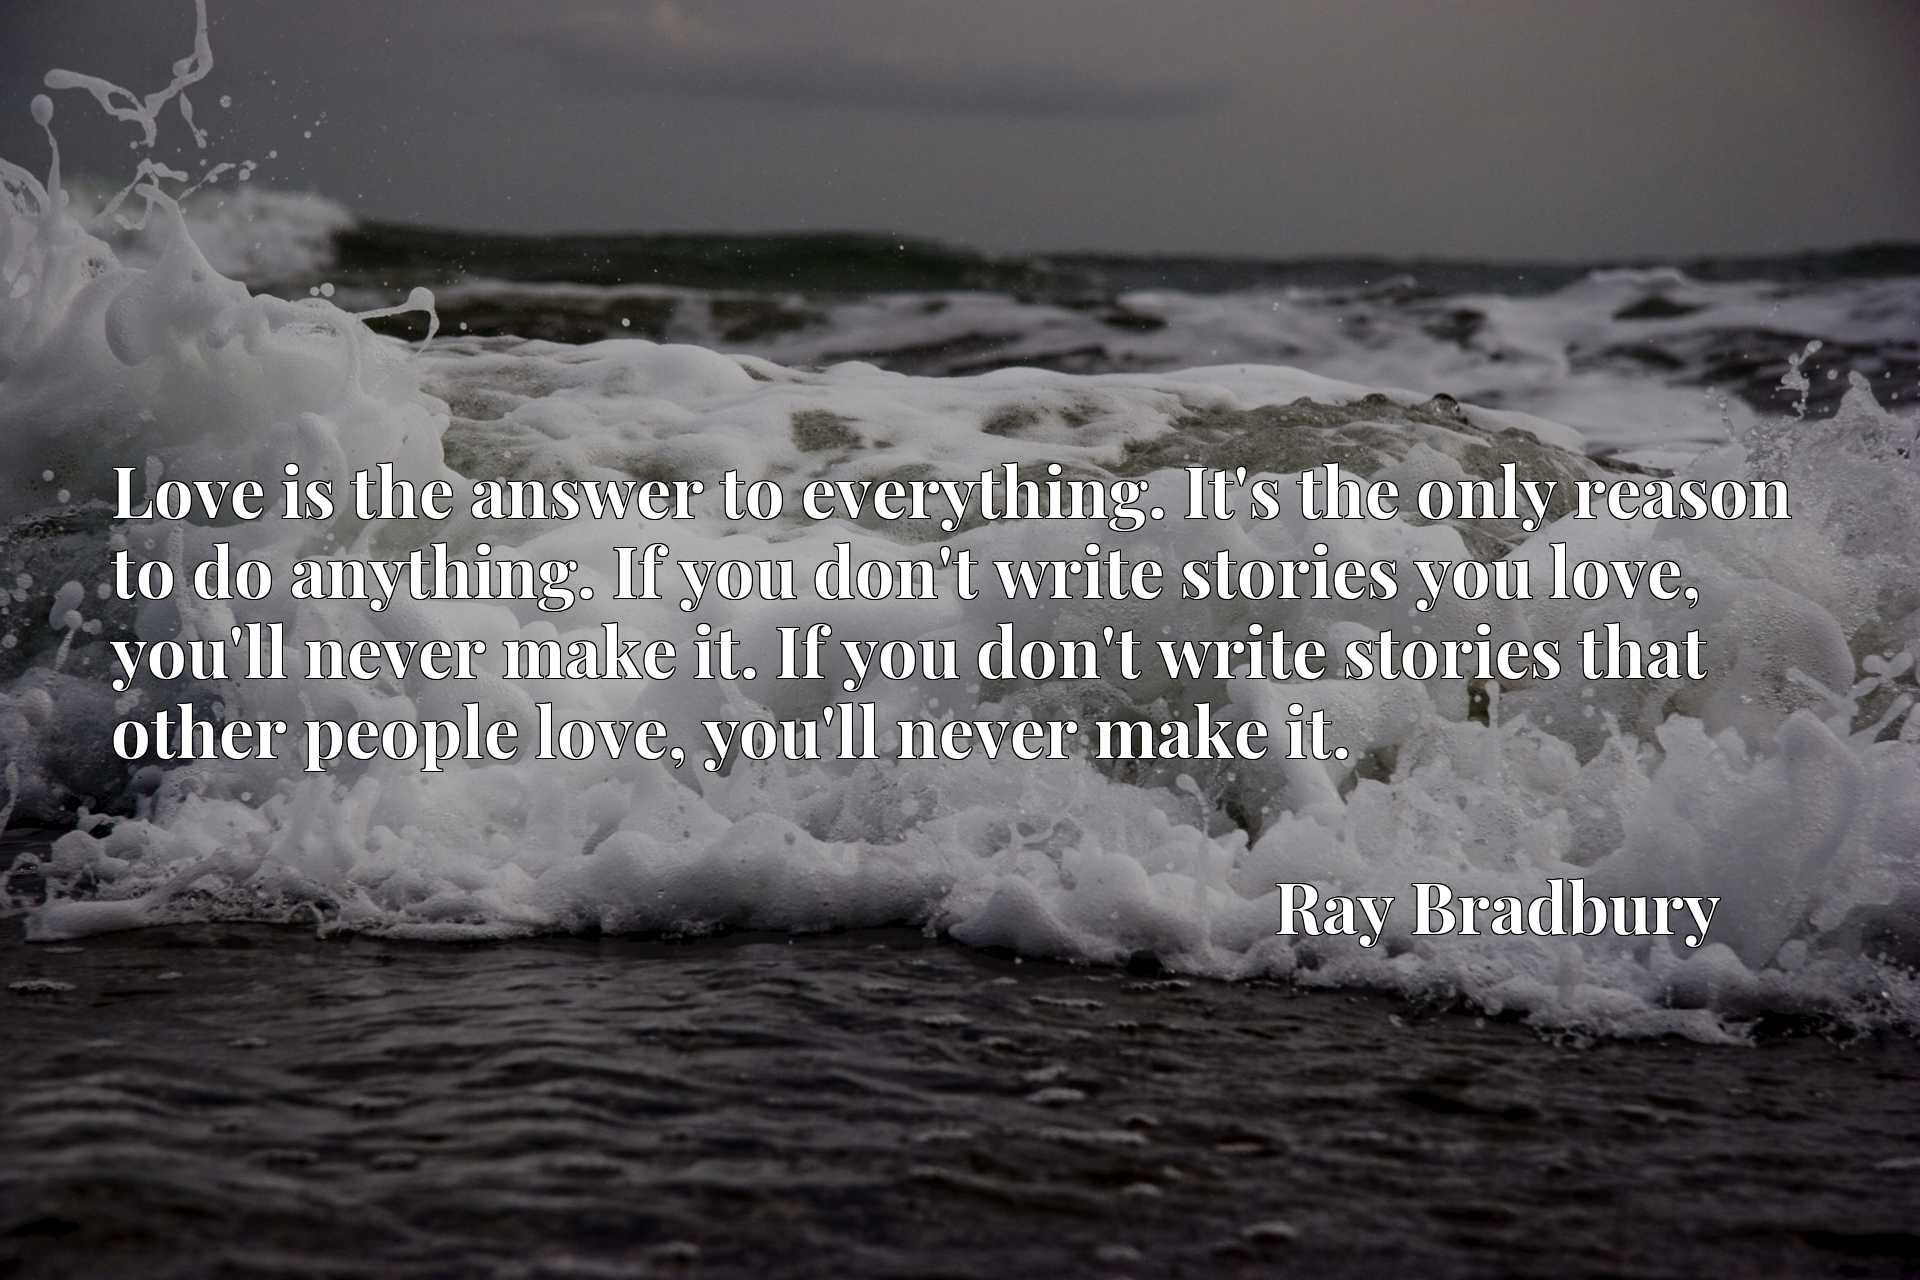 Love is the answer to everything. It's the only reason to do anything. If you don't write stories you love, you'll never make it. If you don't write stories that other people love, you'll never make it.